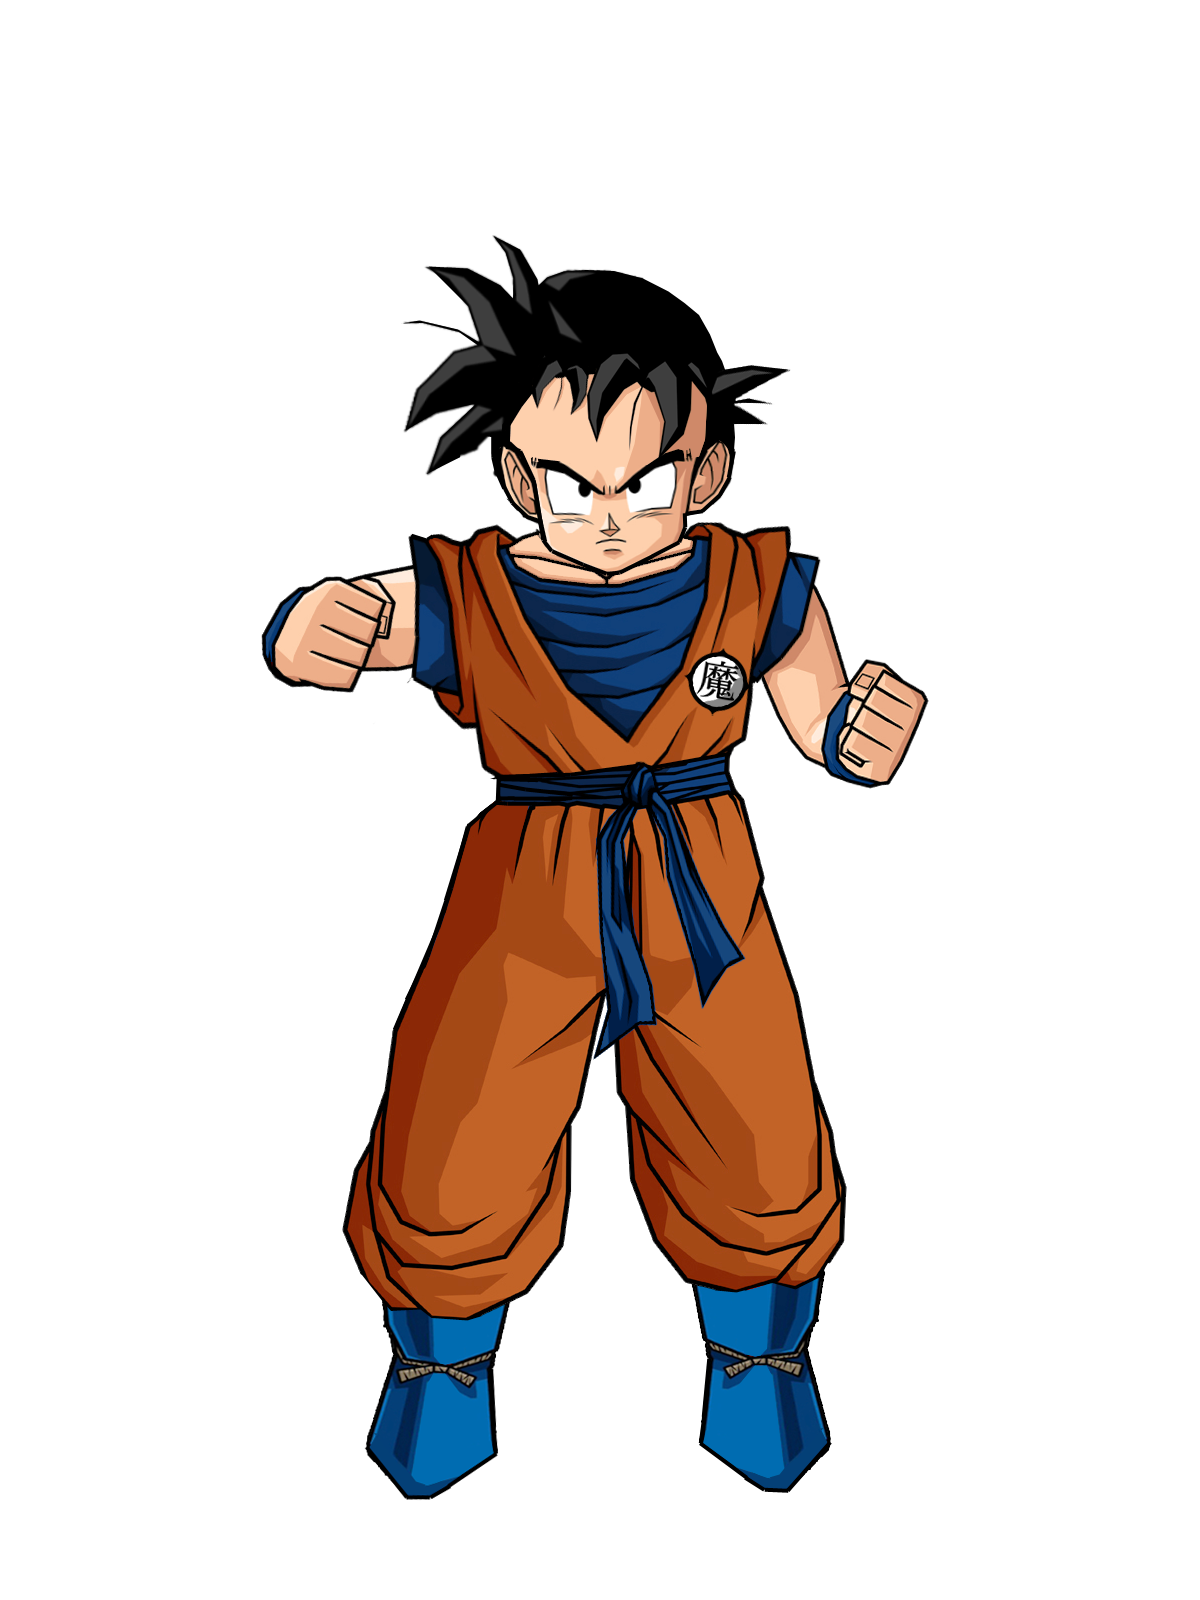 Goku clothes png. Image kidgohannewlook the lookout